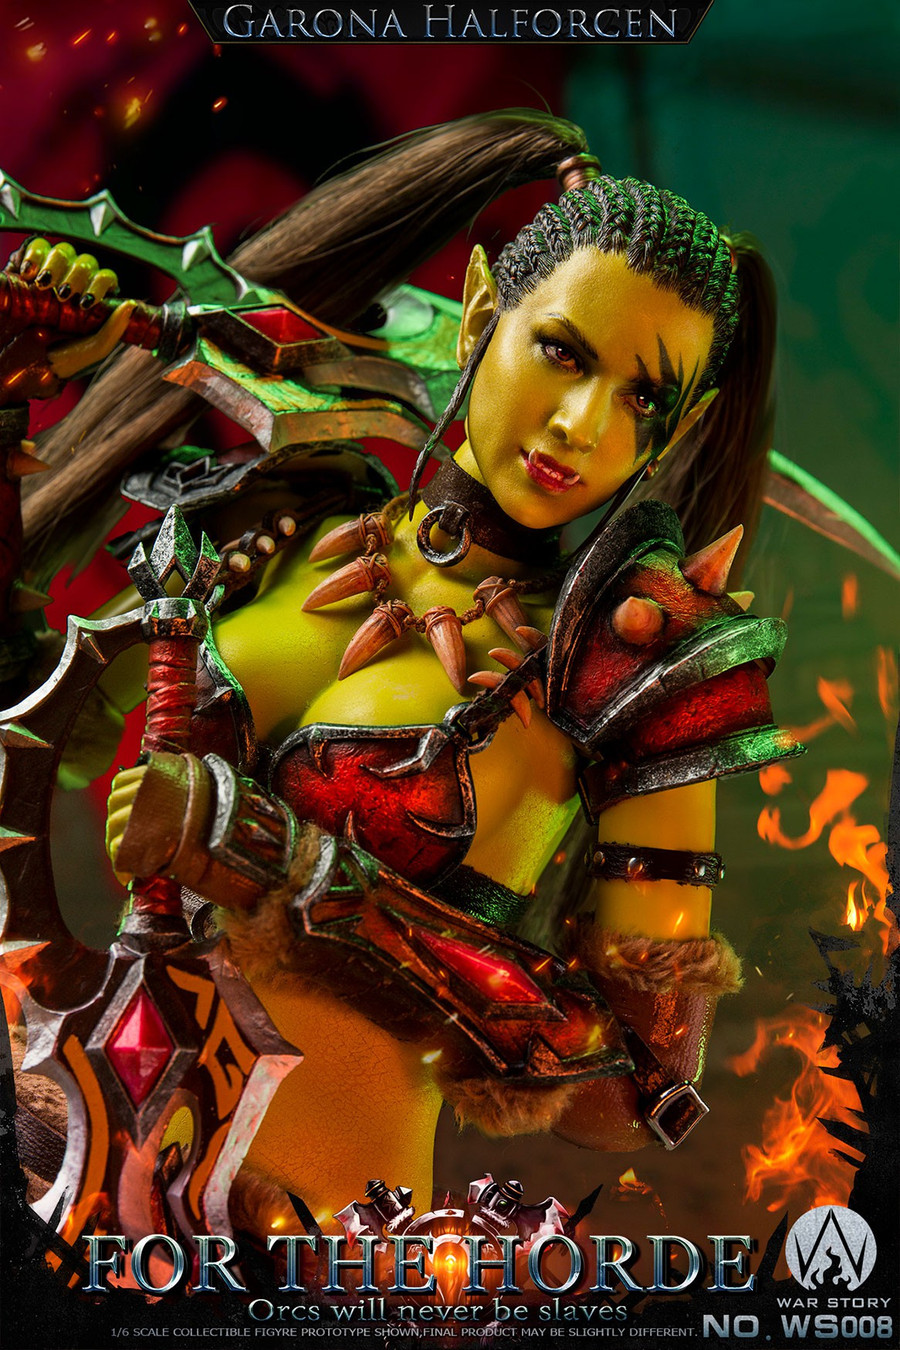 War Story - Orc Female Assassin for the Tribe